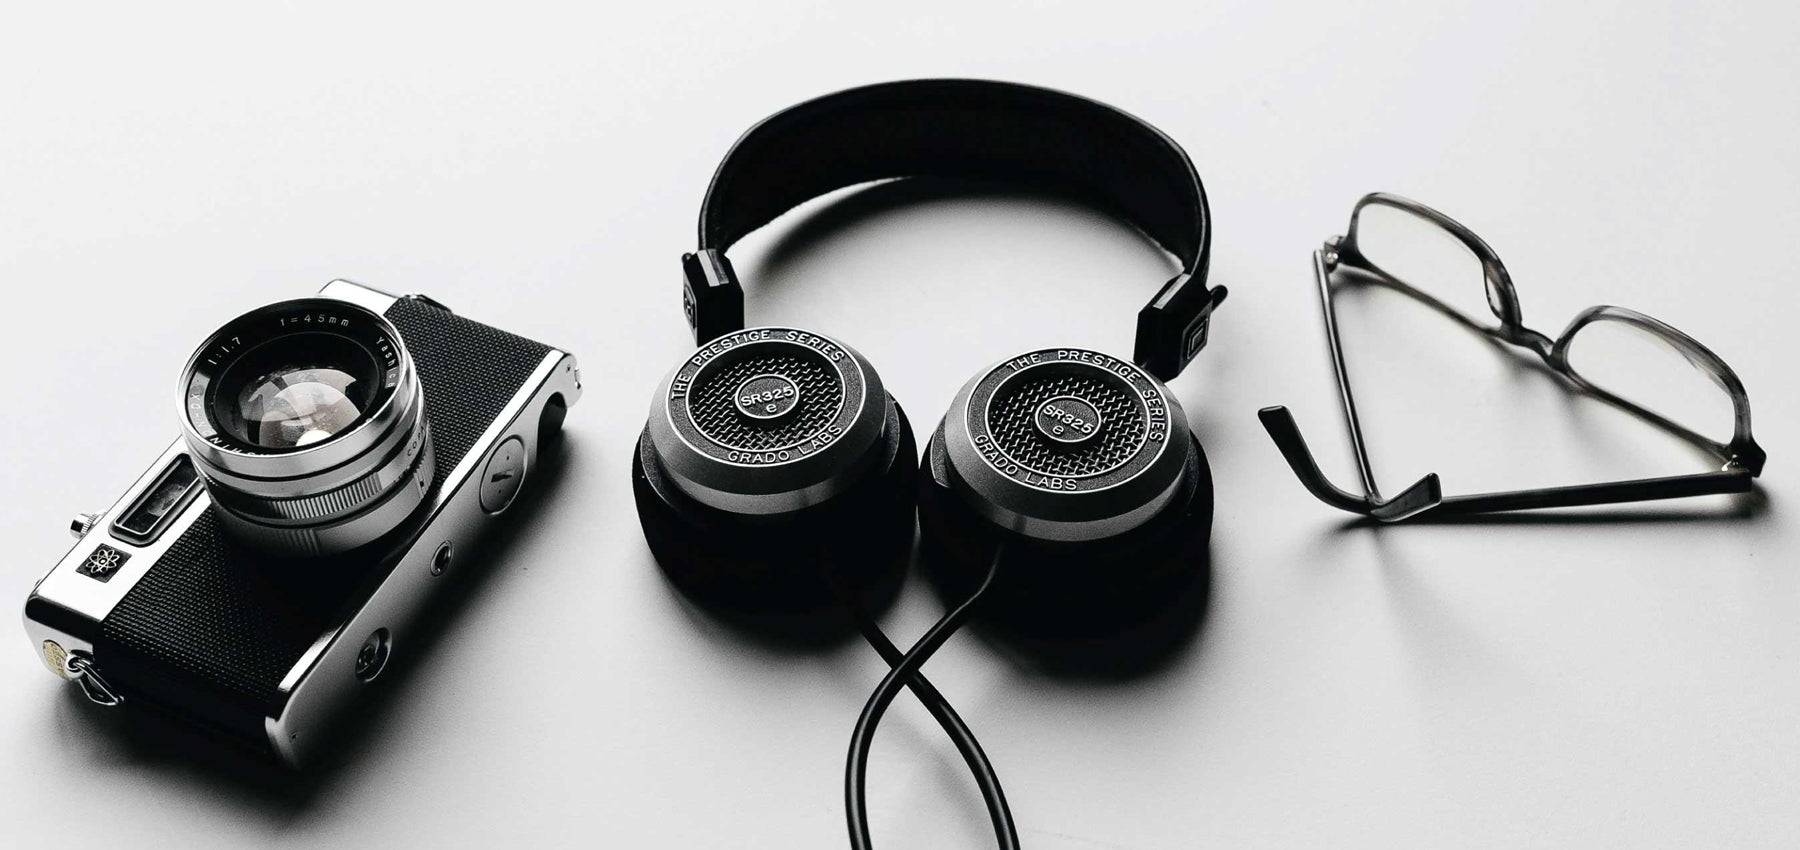 Introducing GRADO - Iconic Headphones & Timeless Heritage